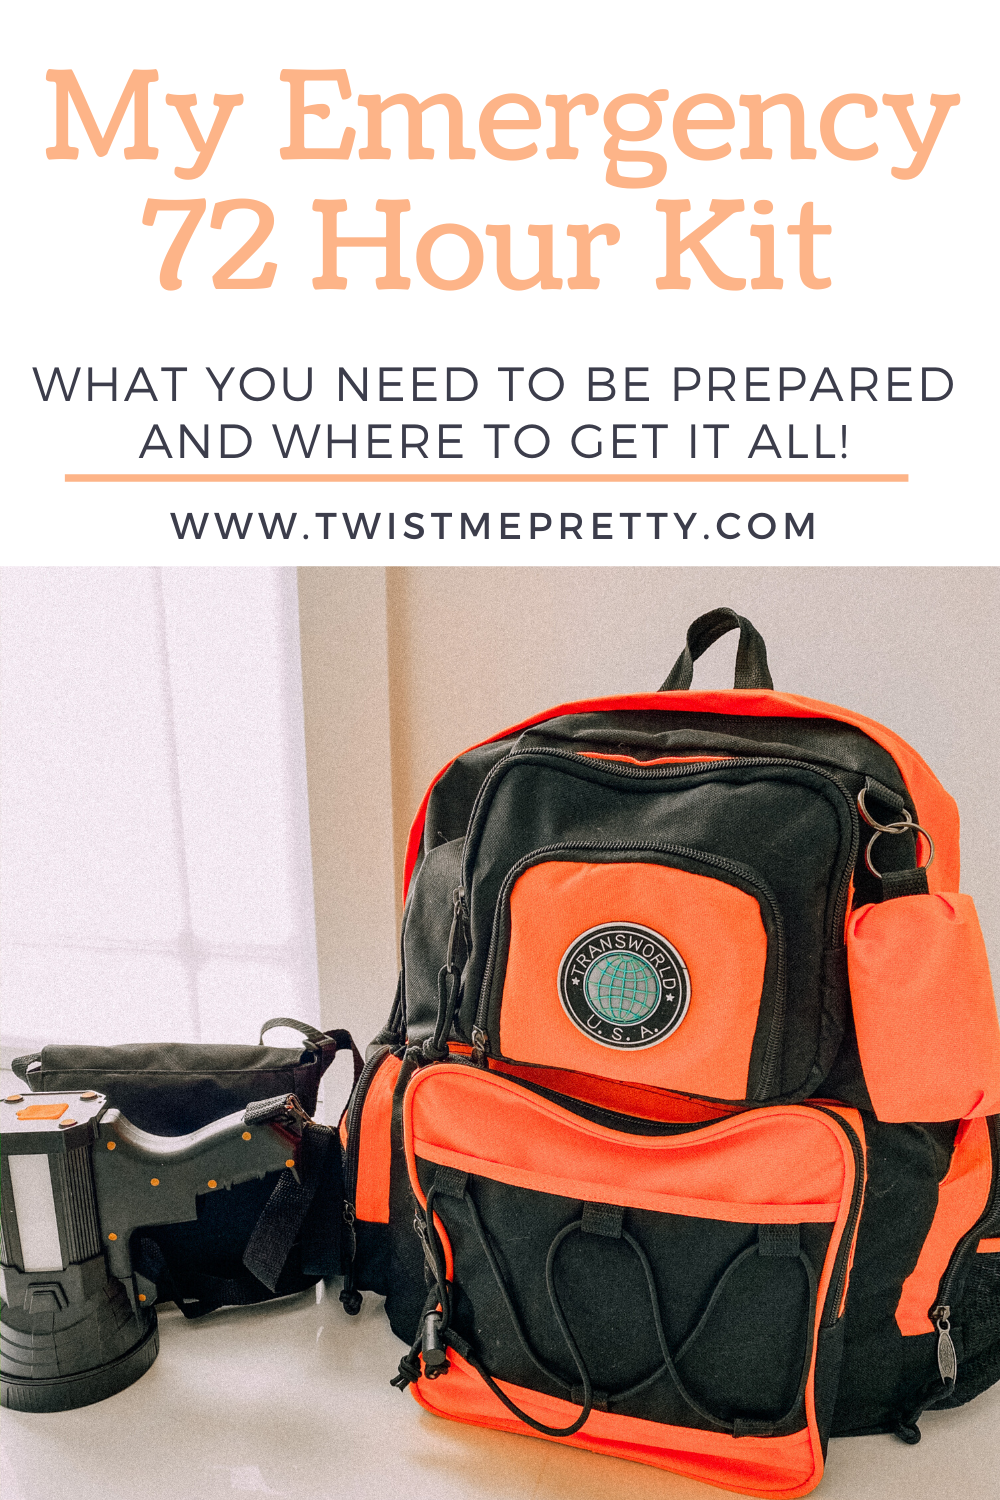 My Emergency 72 Hour Kit. What you should pack in yours. www.twistmepretty.com